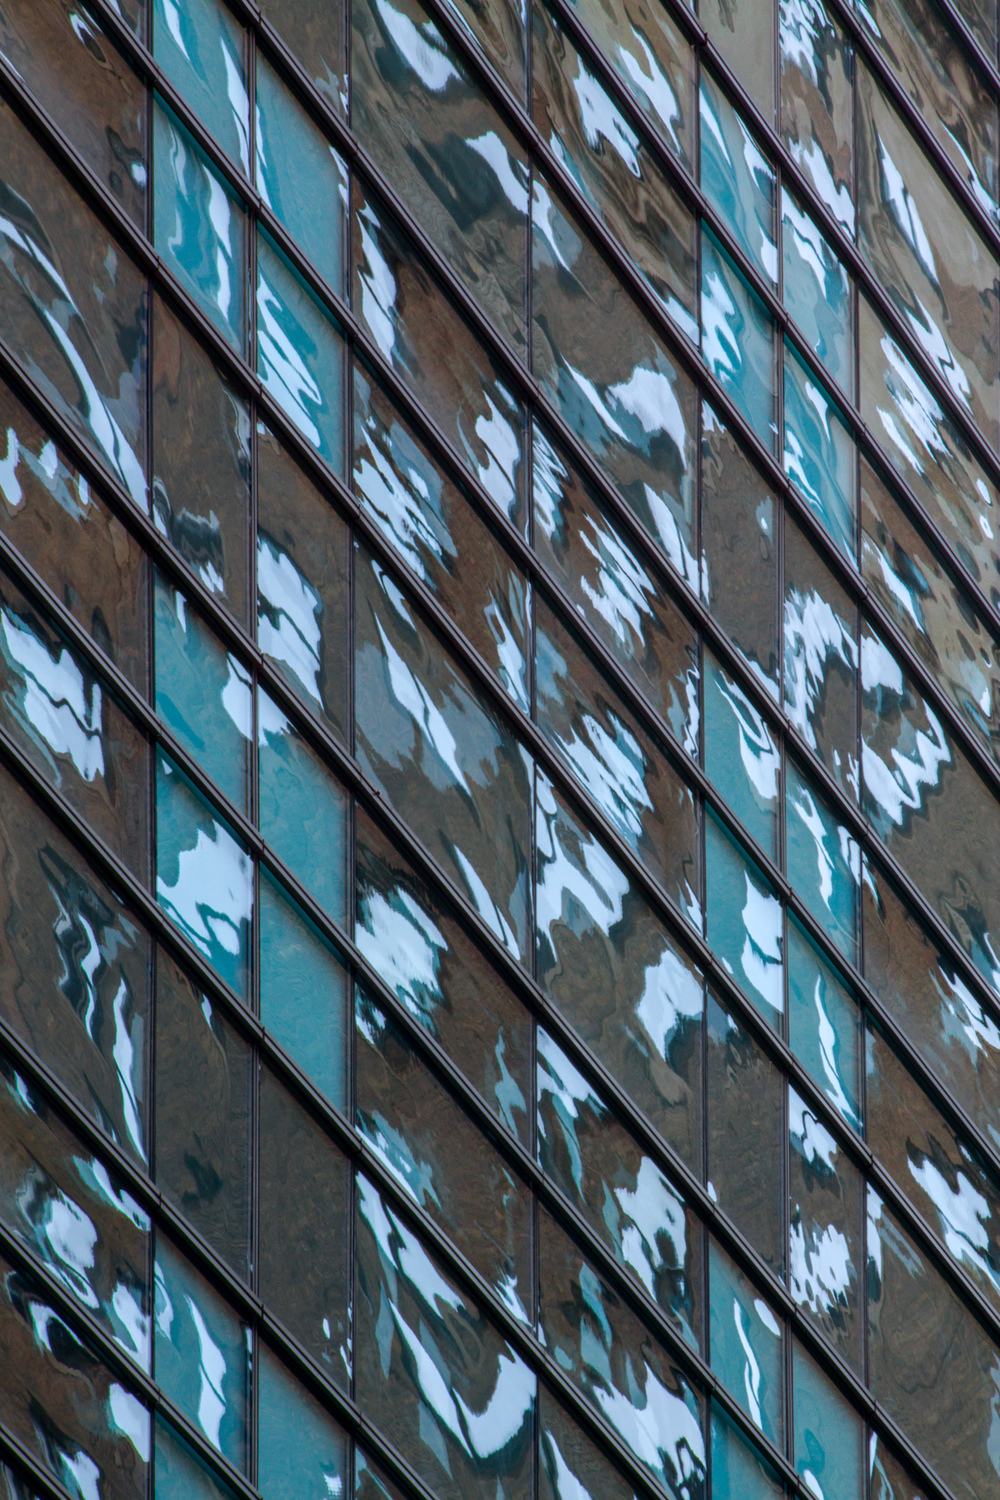 Architectural_abstractions_150725-9930_FINAL.jpg